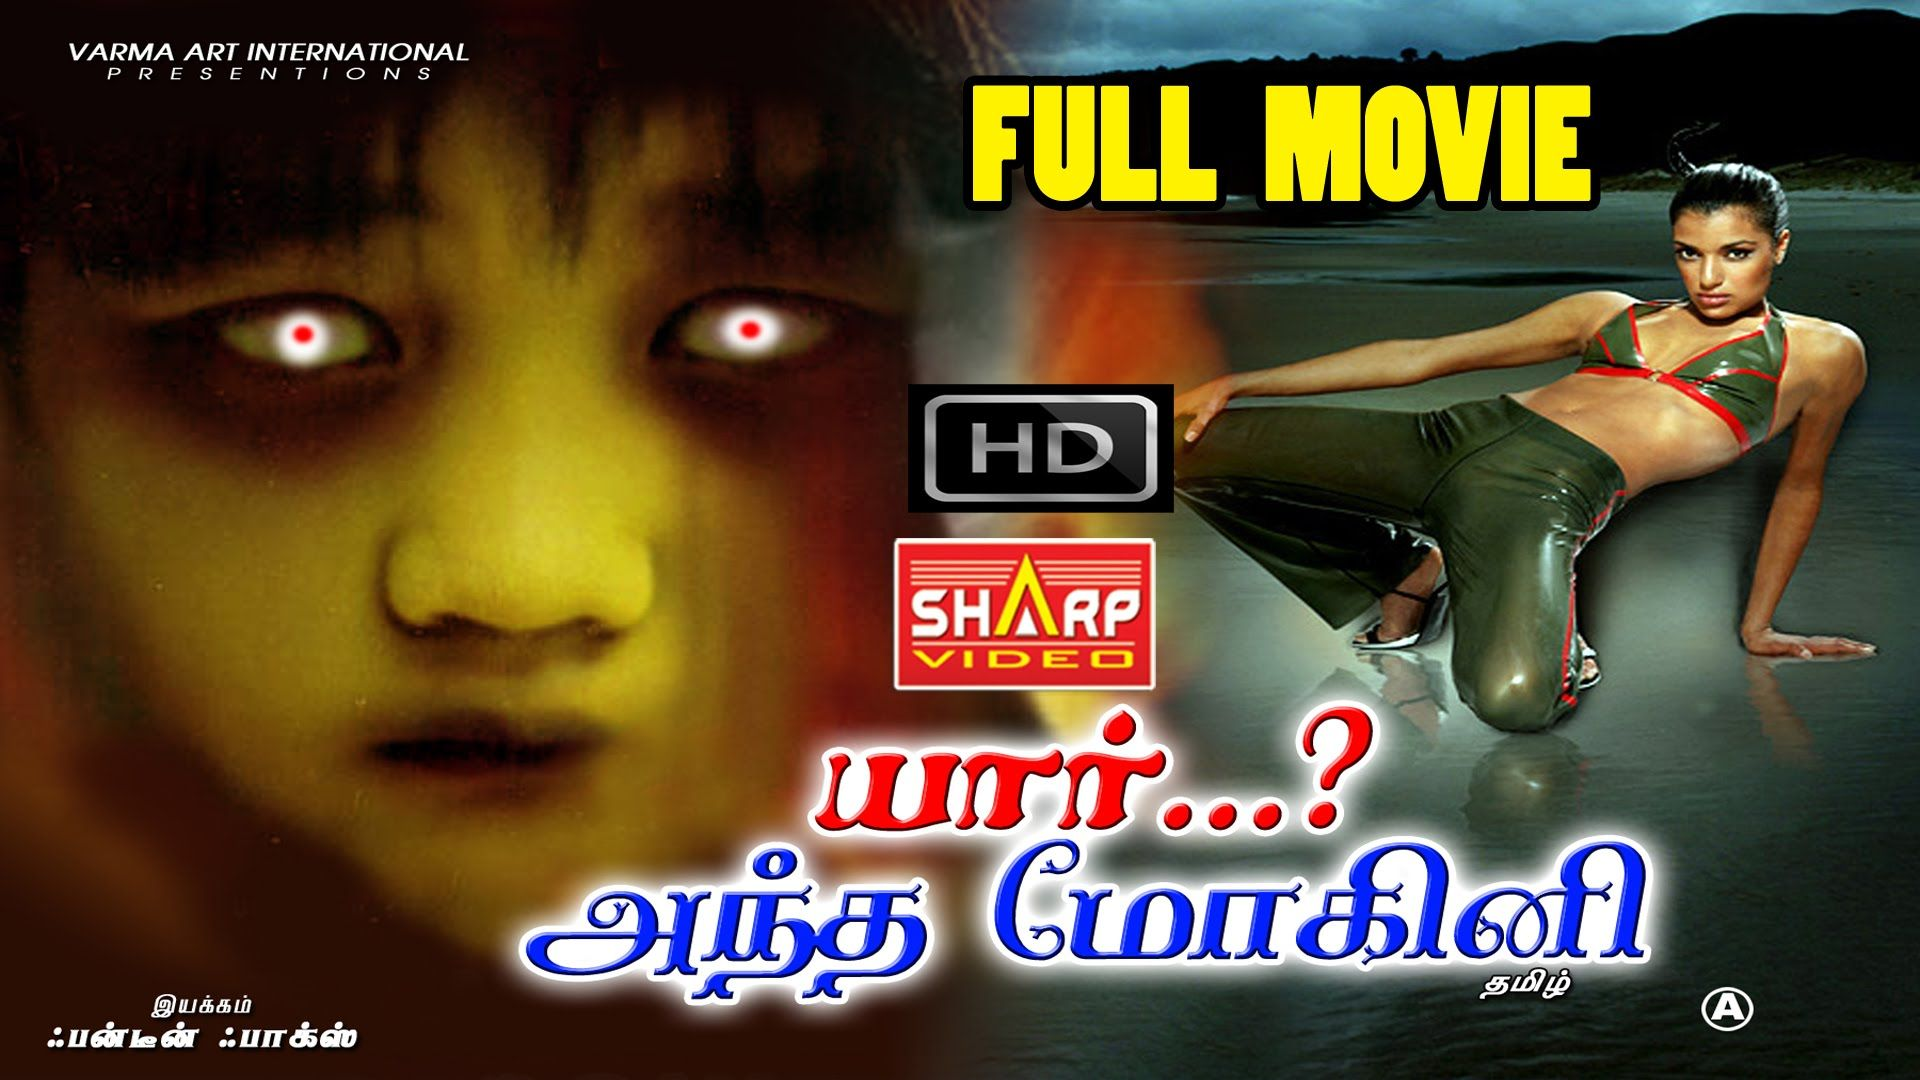 ACTION HD TAMIL DUBBED MOVIE HOLLYWOOD TAMIL MOVIE